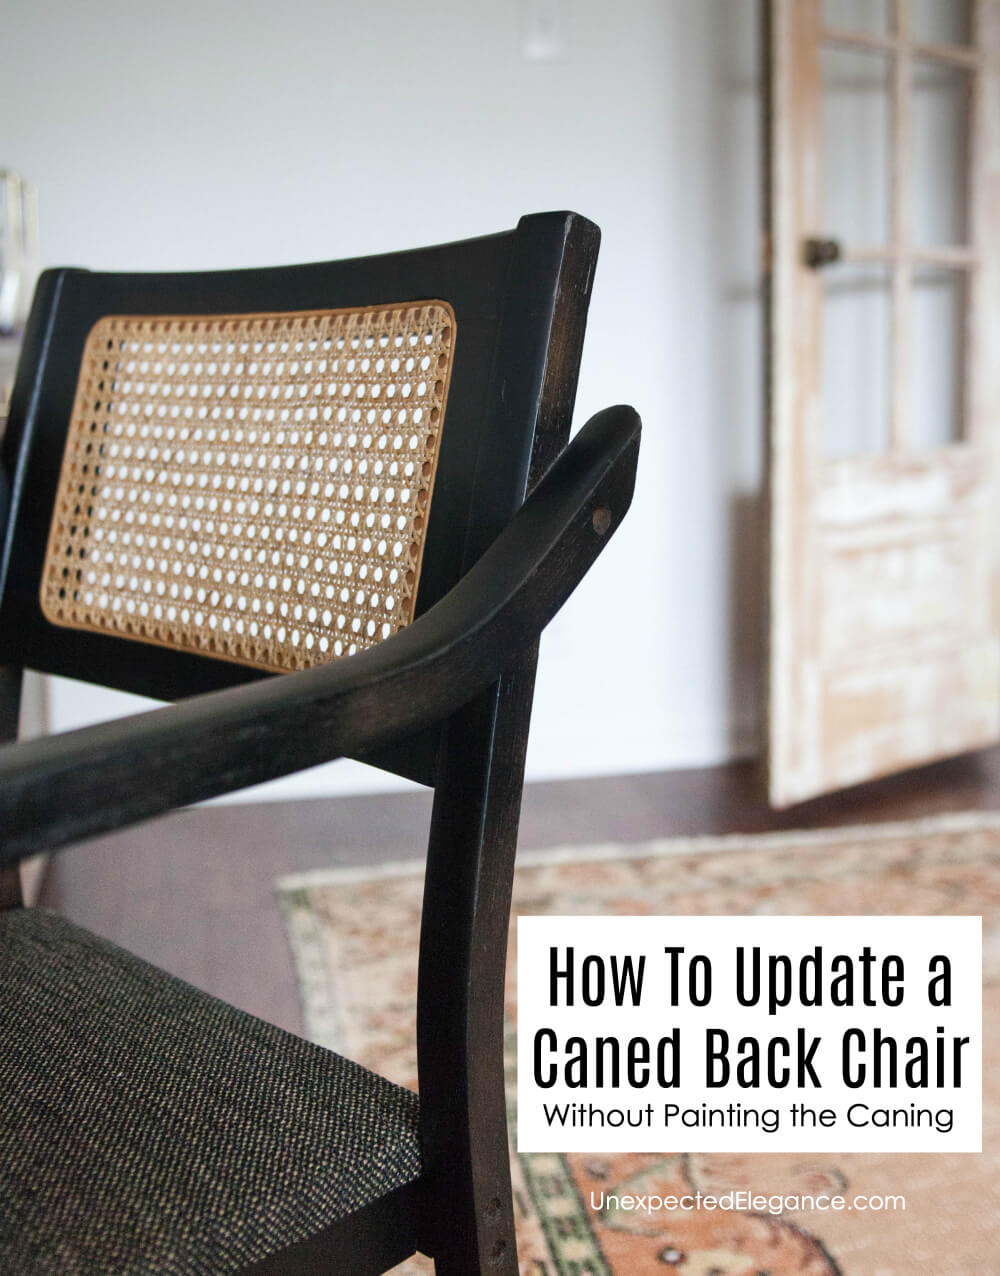 Check this incredibly easy way for how to spray paint a cane chair, without painting the cane! It will take you minutes to prep and the results are beautiful!